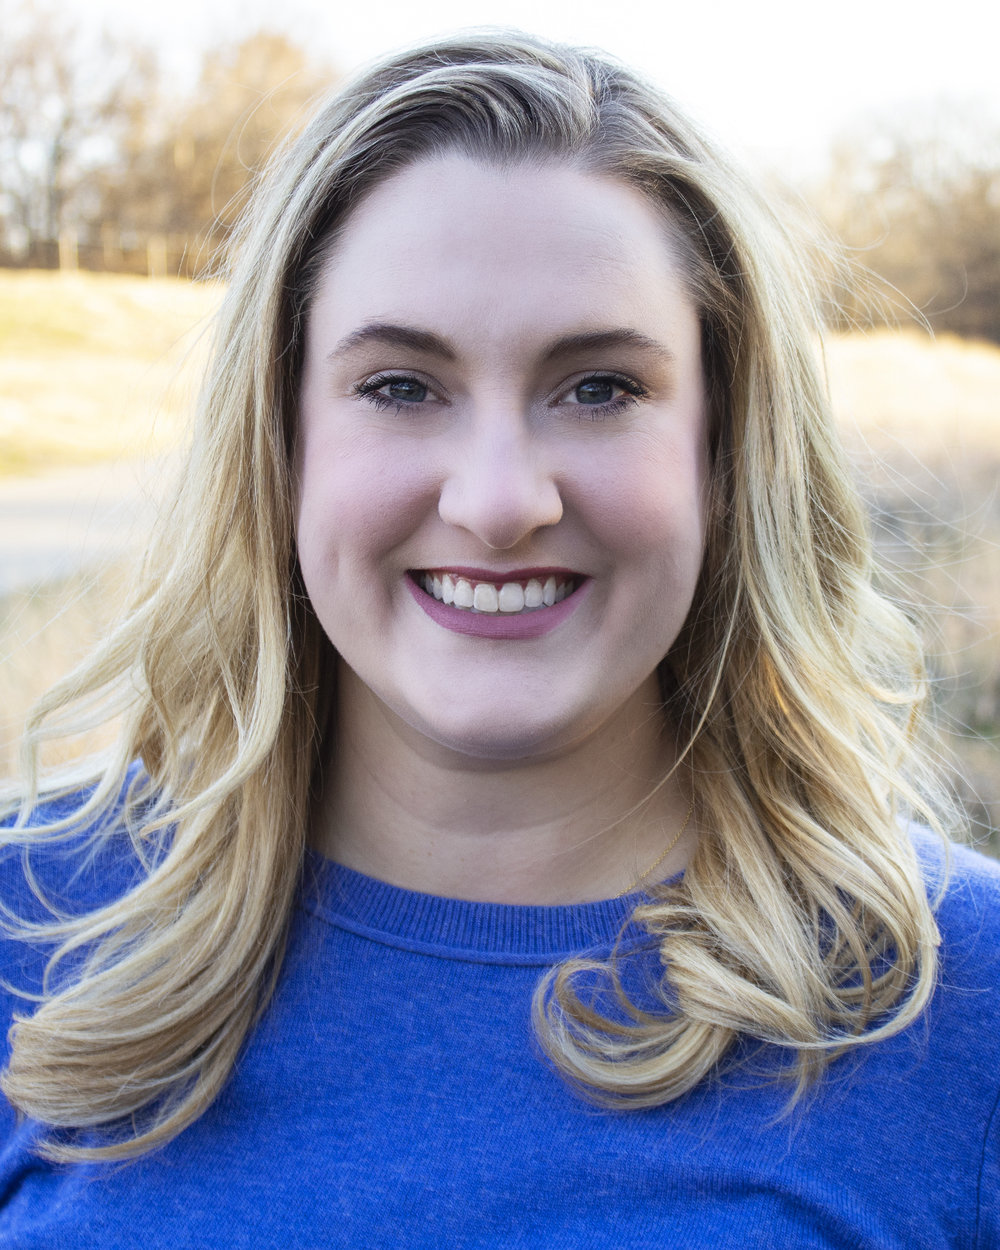 Megan McKinney, M.A., LPC-Intern, LMFT-A, Under Supervision of Dr. Ryan Holliman, LPC-S - Licensed Professional Counselor- InternGottman Level 2 TrainedInsurance: N/ADBT TrainedPrivate Pay RateLocation: Dallas and Rockwall, Texas